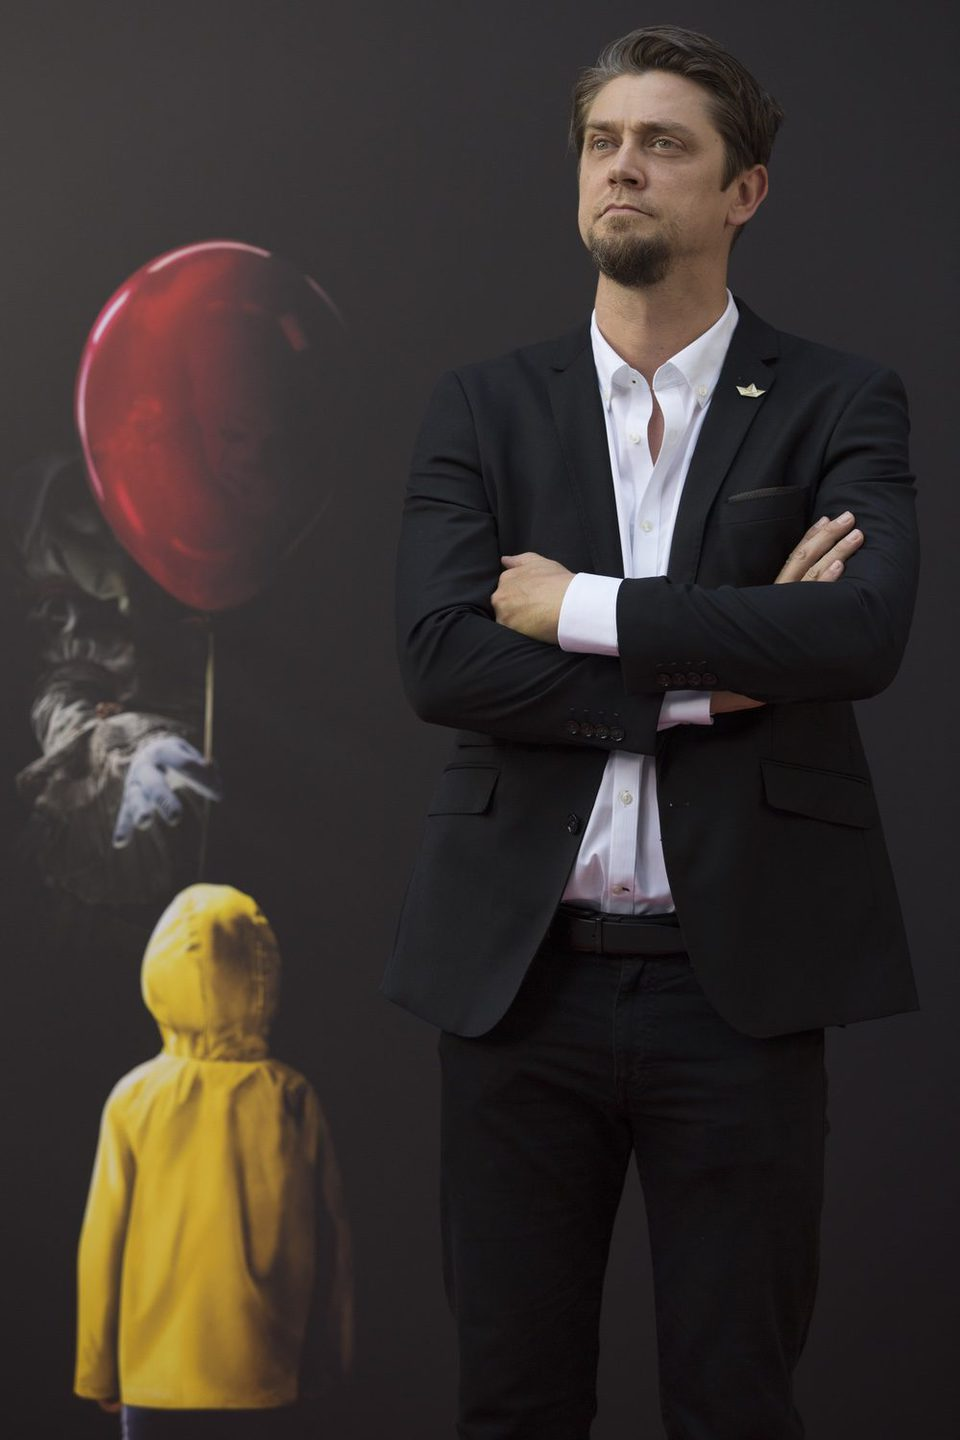 Andy Muschietti poses like James Bond at 'It' presentation in Madrid